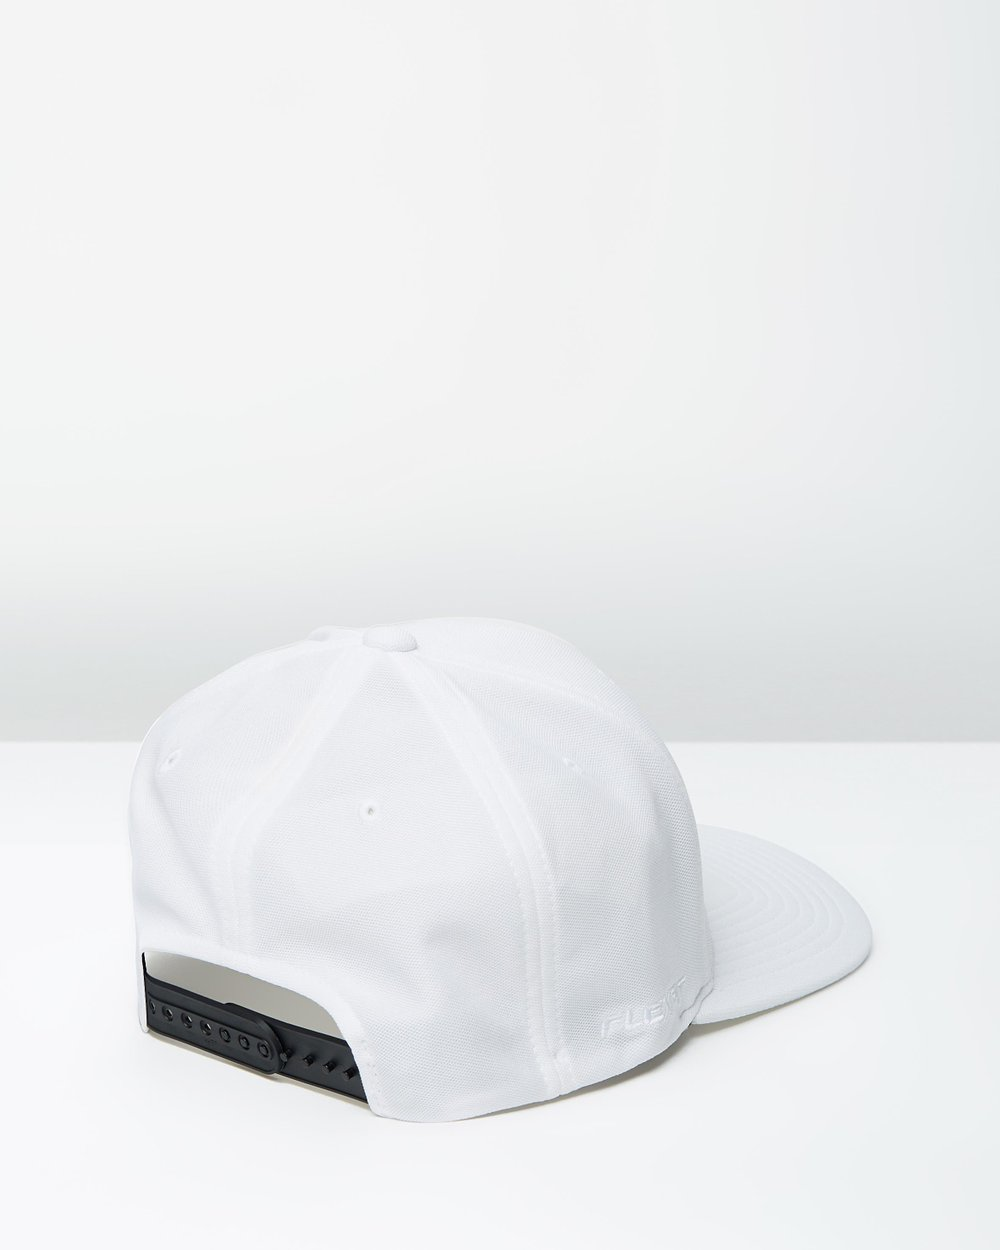 9c389af586d First Place Snap Back Hat by FlexFit Online